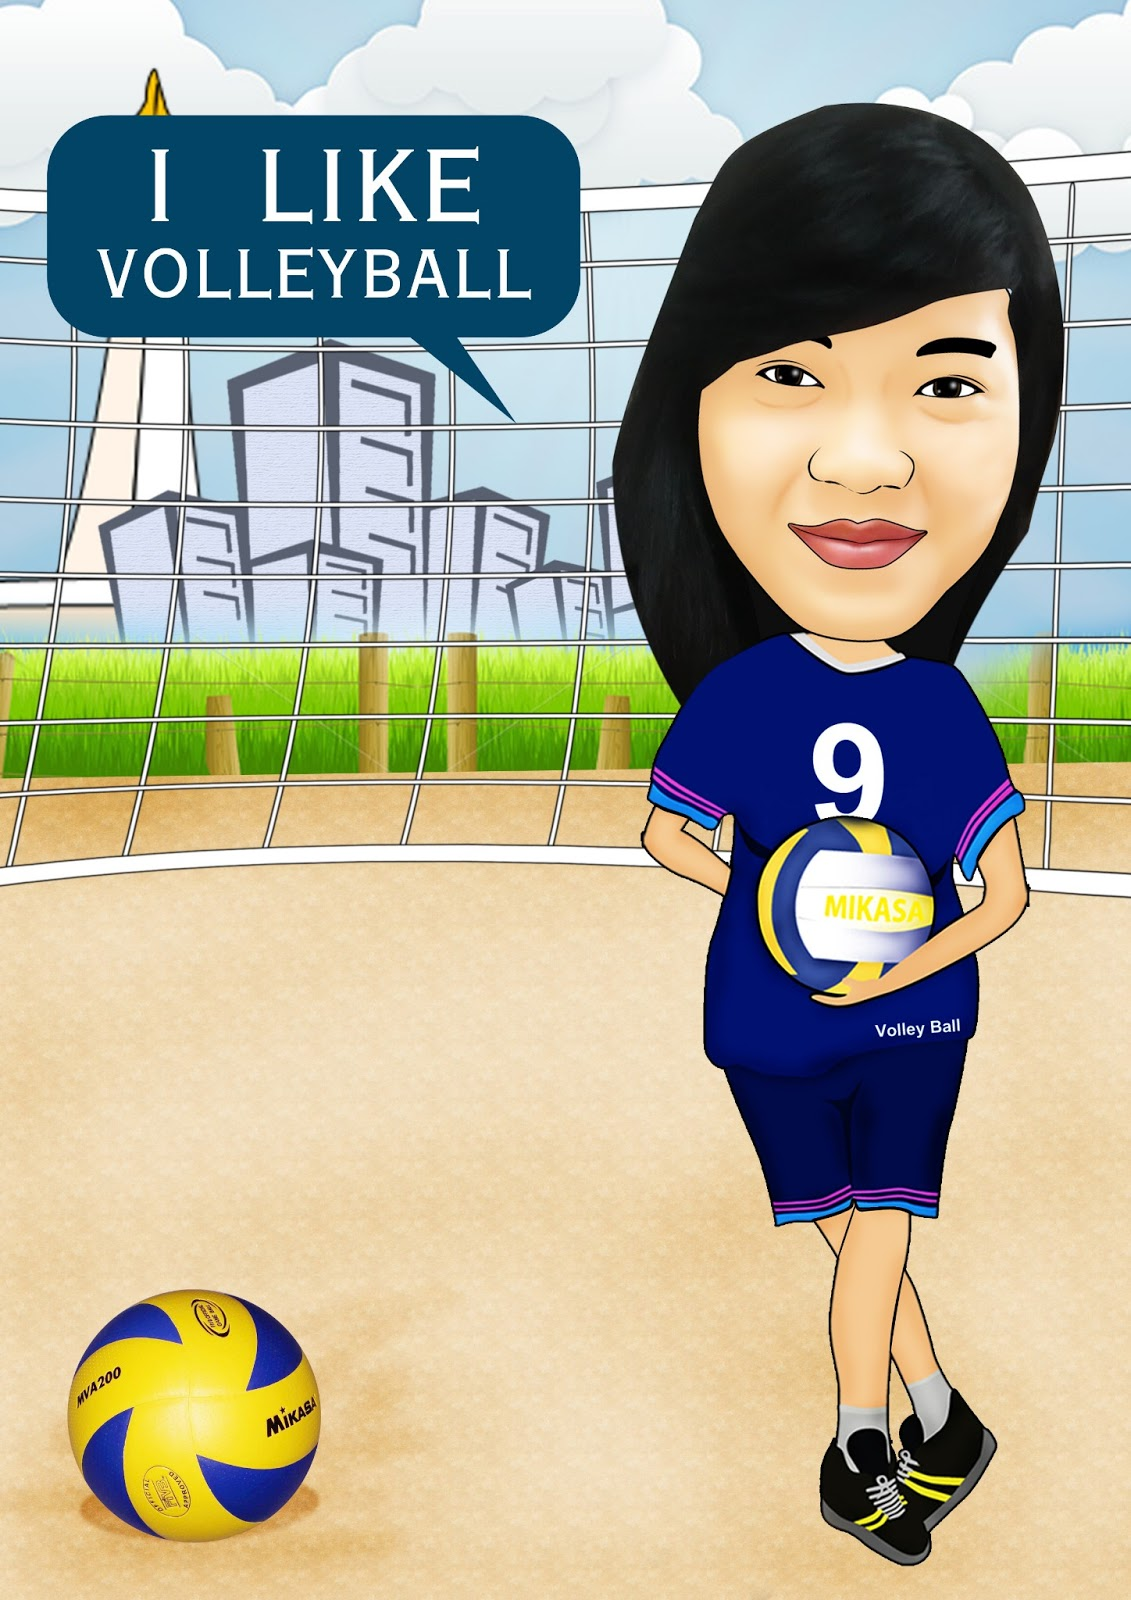 Gambar Kartun Volley Ball